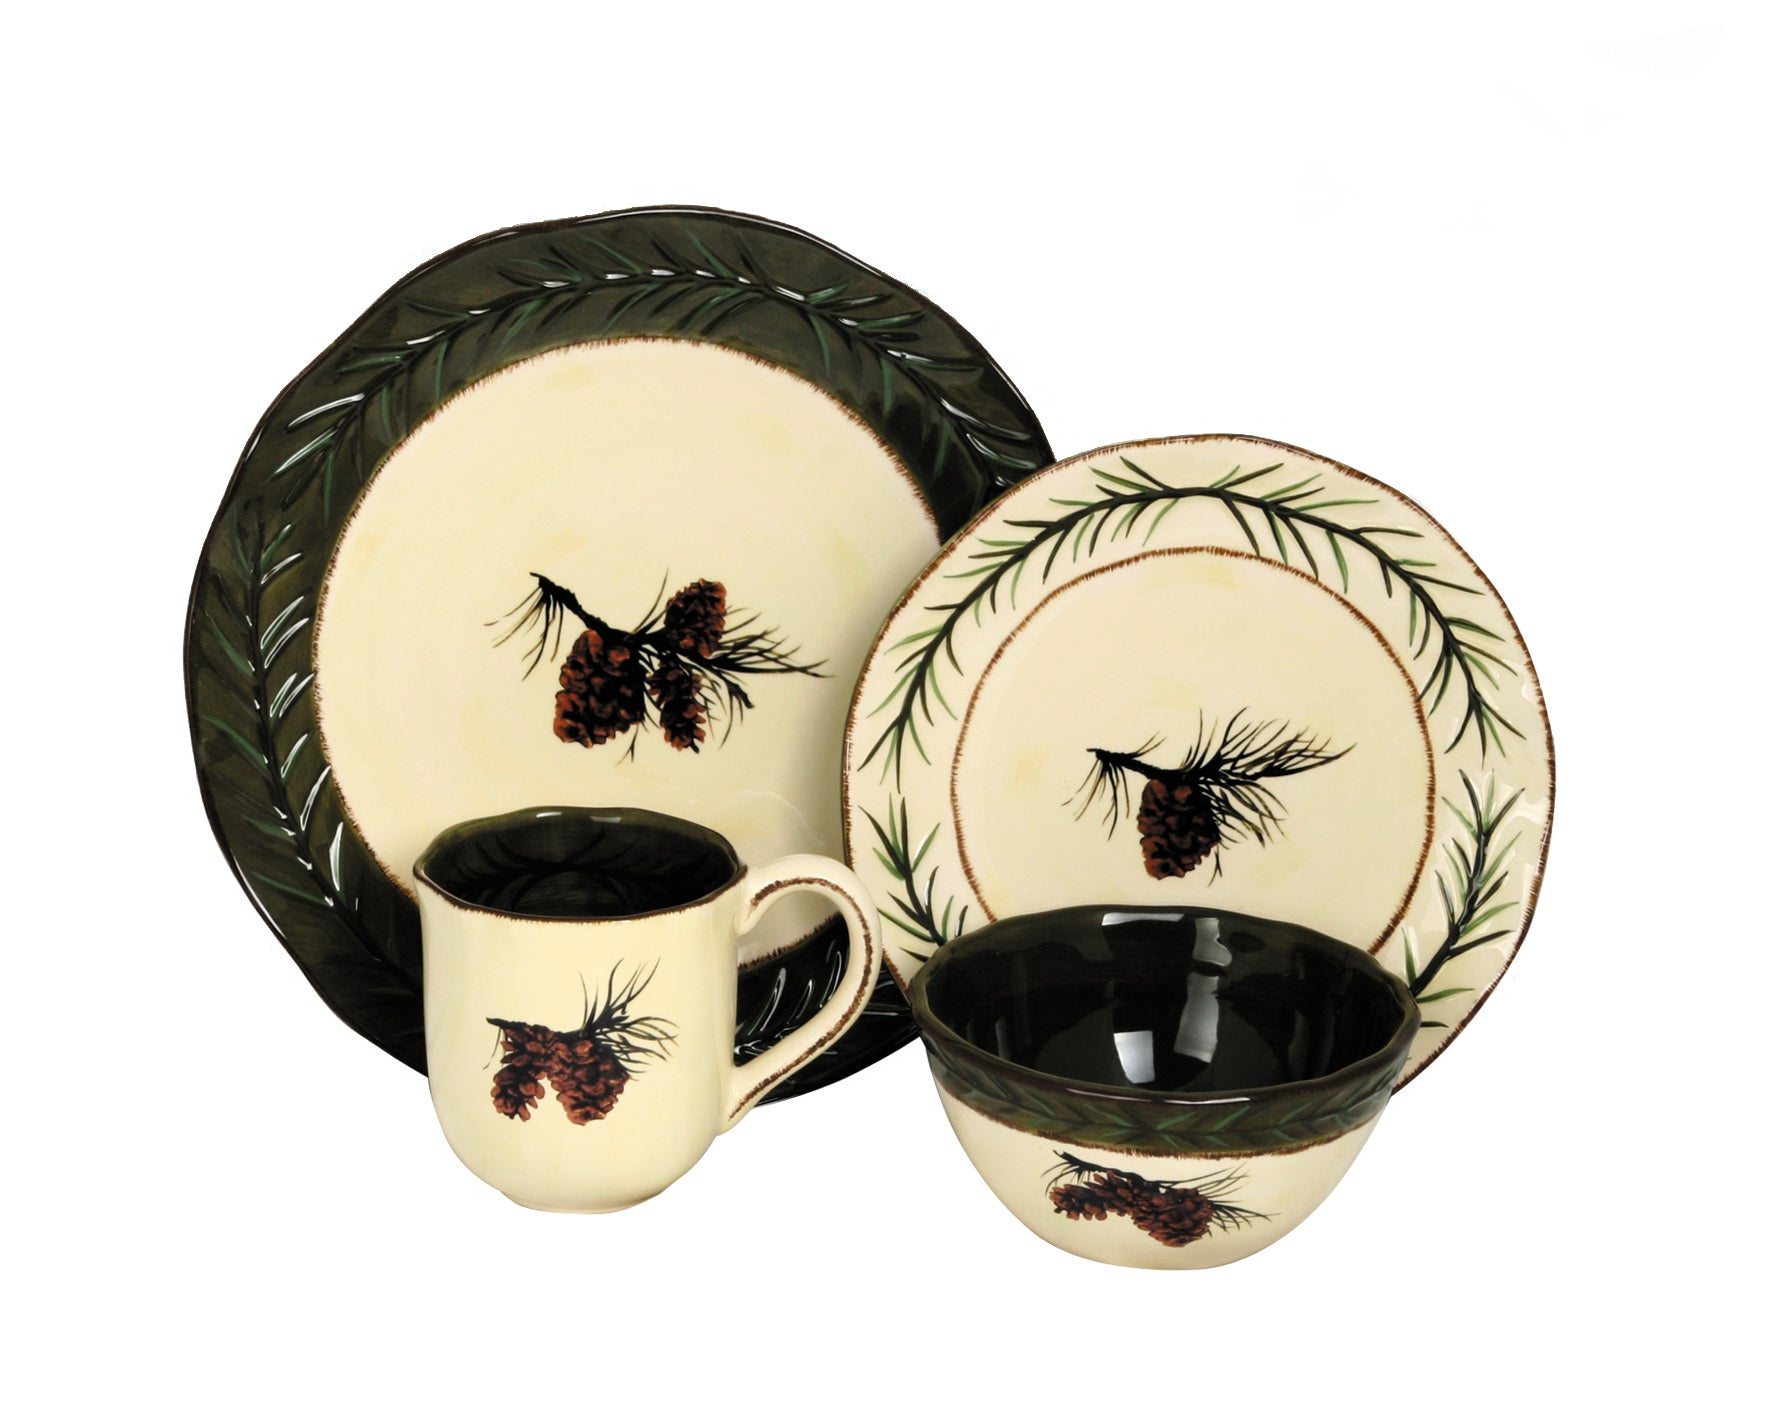 DI1800 - 16 PC Pine Cone Dinnerware Set by HiEnd Accents